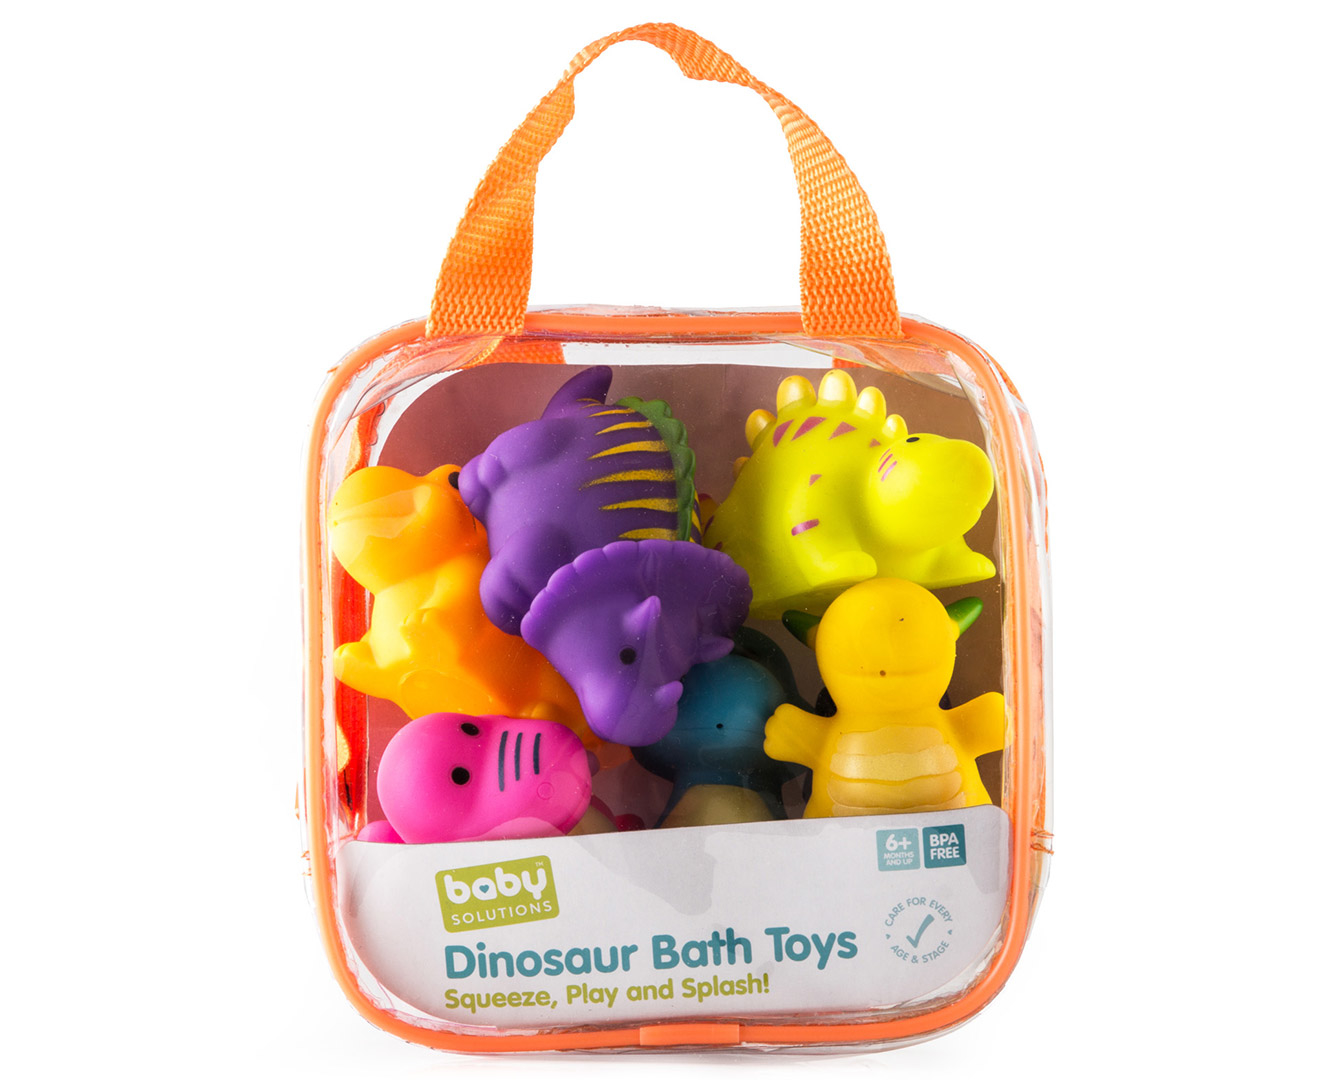 Dinosaur bathroom set